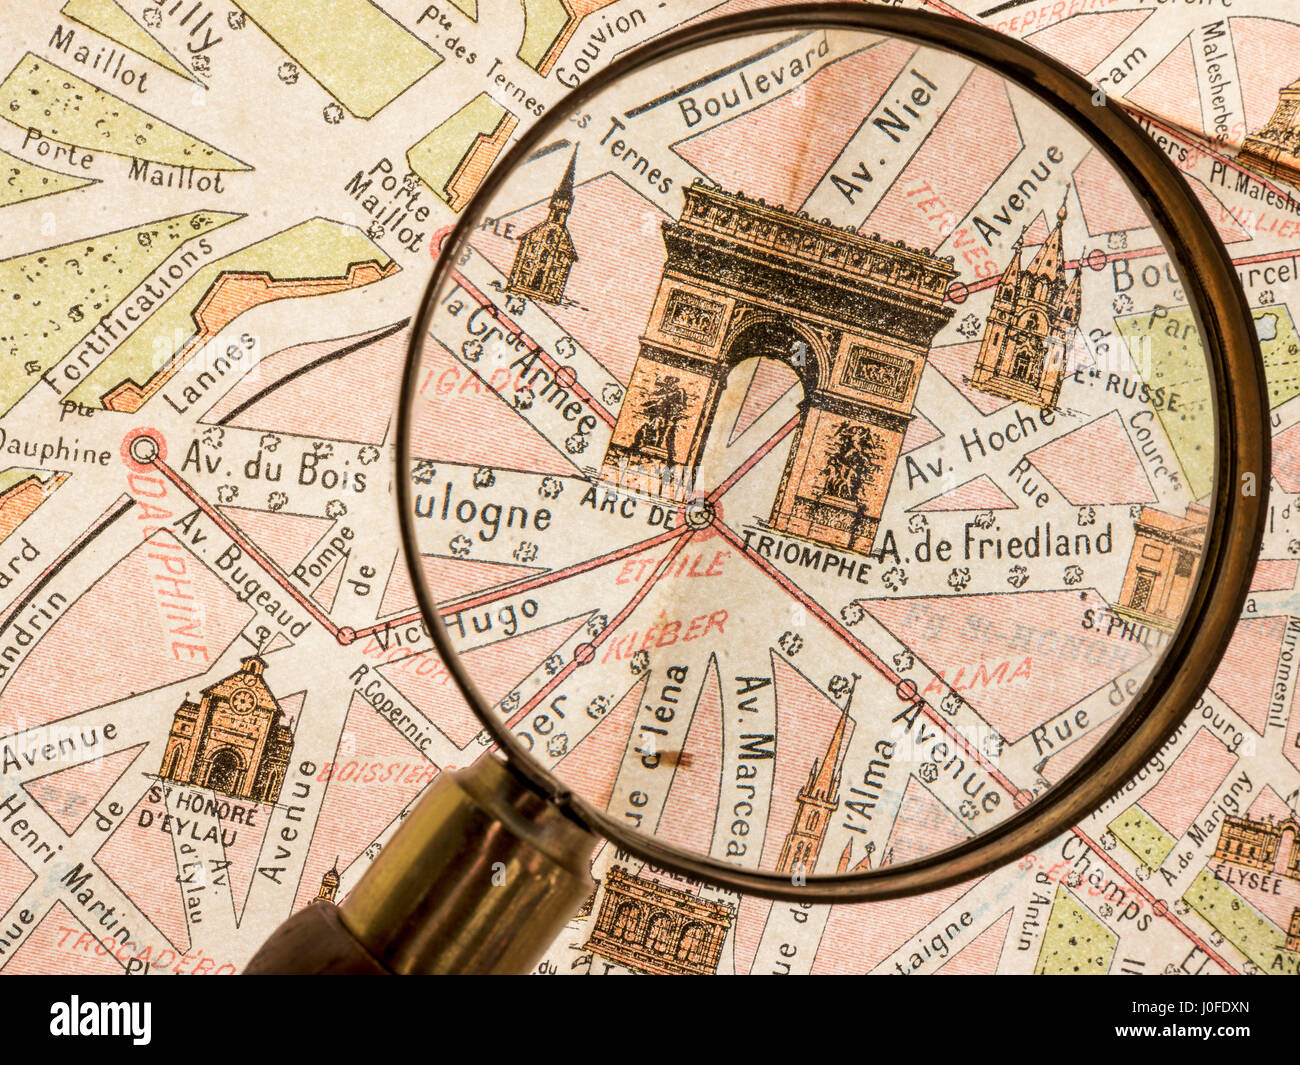 Magnifying Glass on detail of antiquarian vintage retro Monumental Map of 1900's Paris, featuring Arc de Triomphe - Stock Image